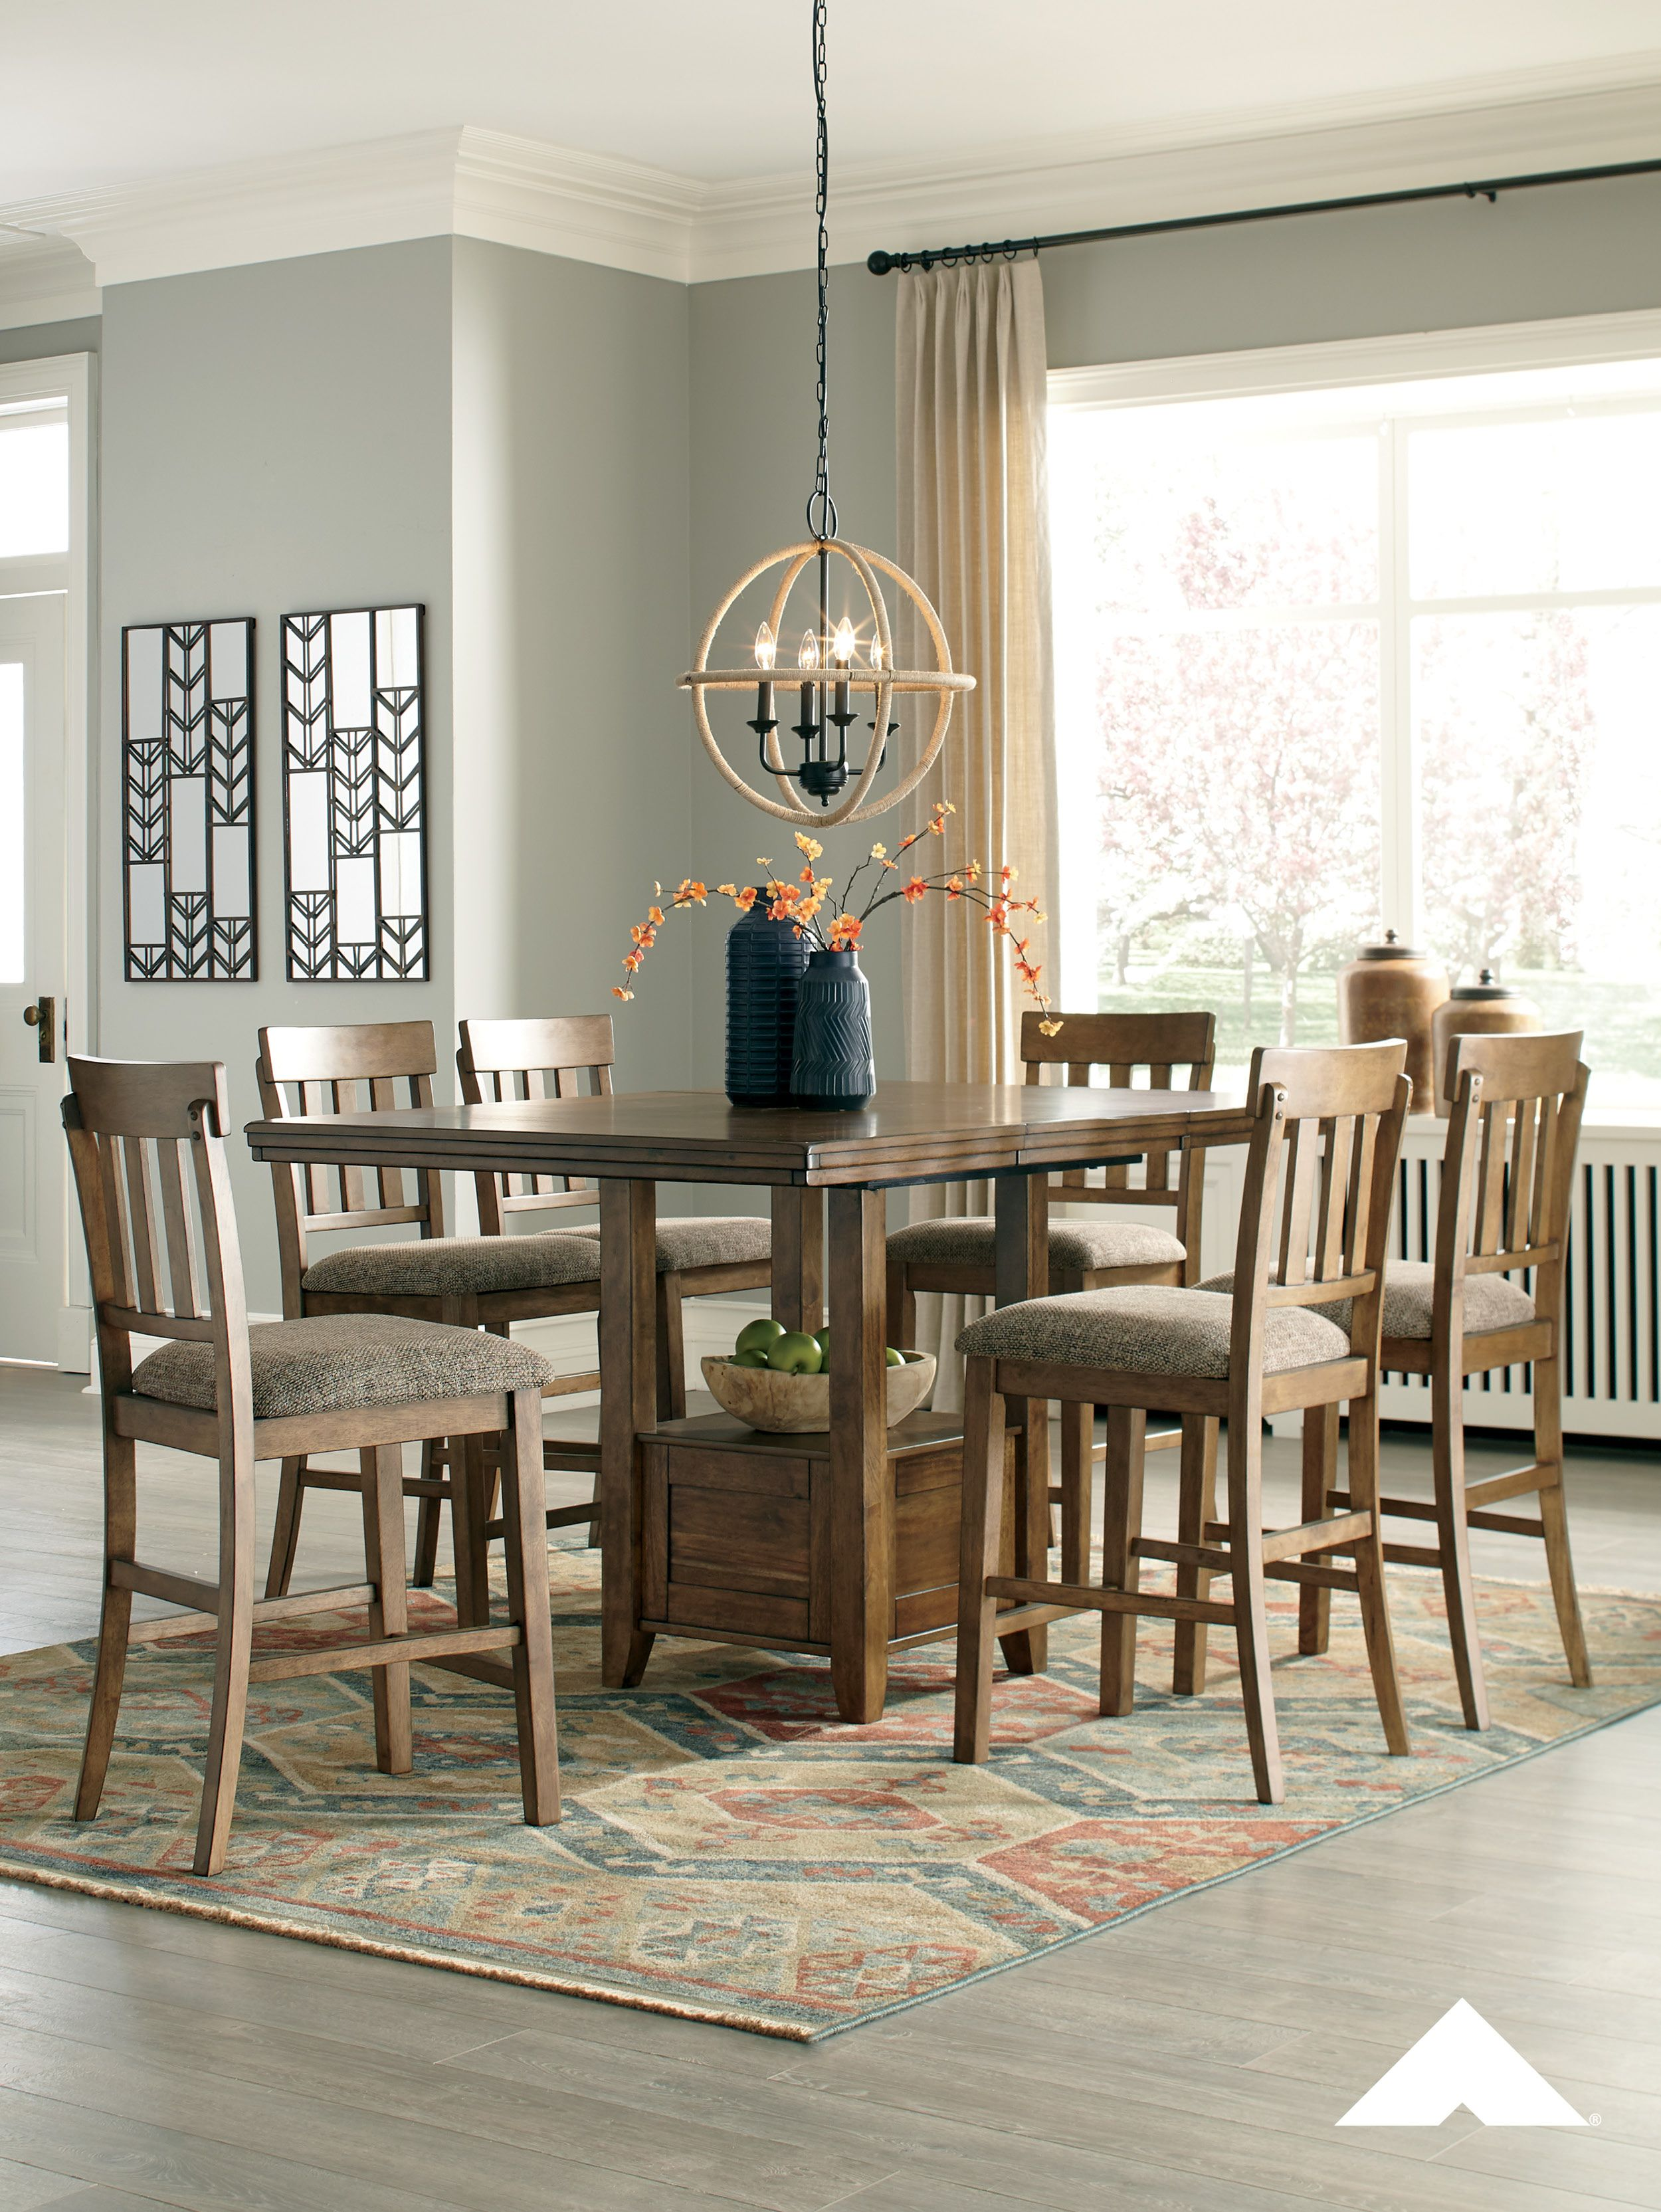 Flaybern Rectangular Dining Room Set Dreaming of